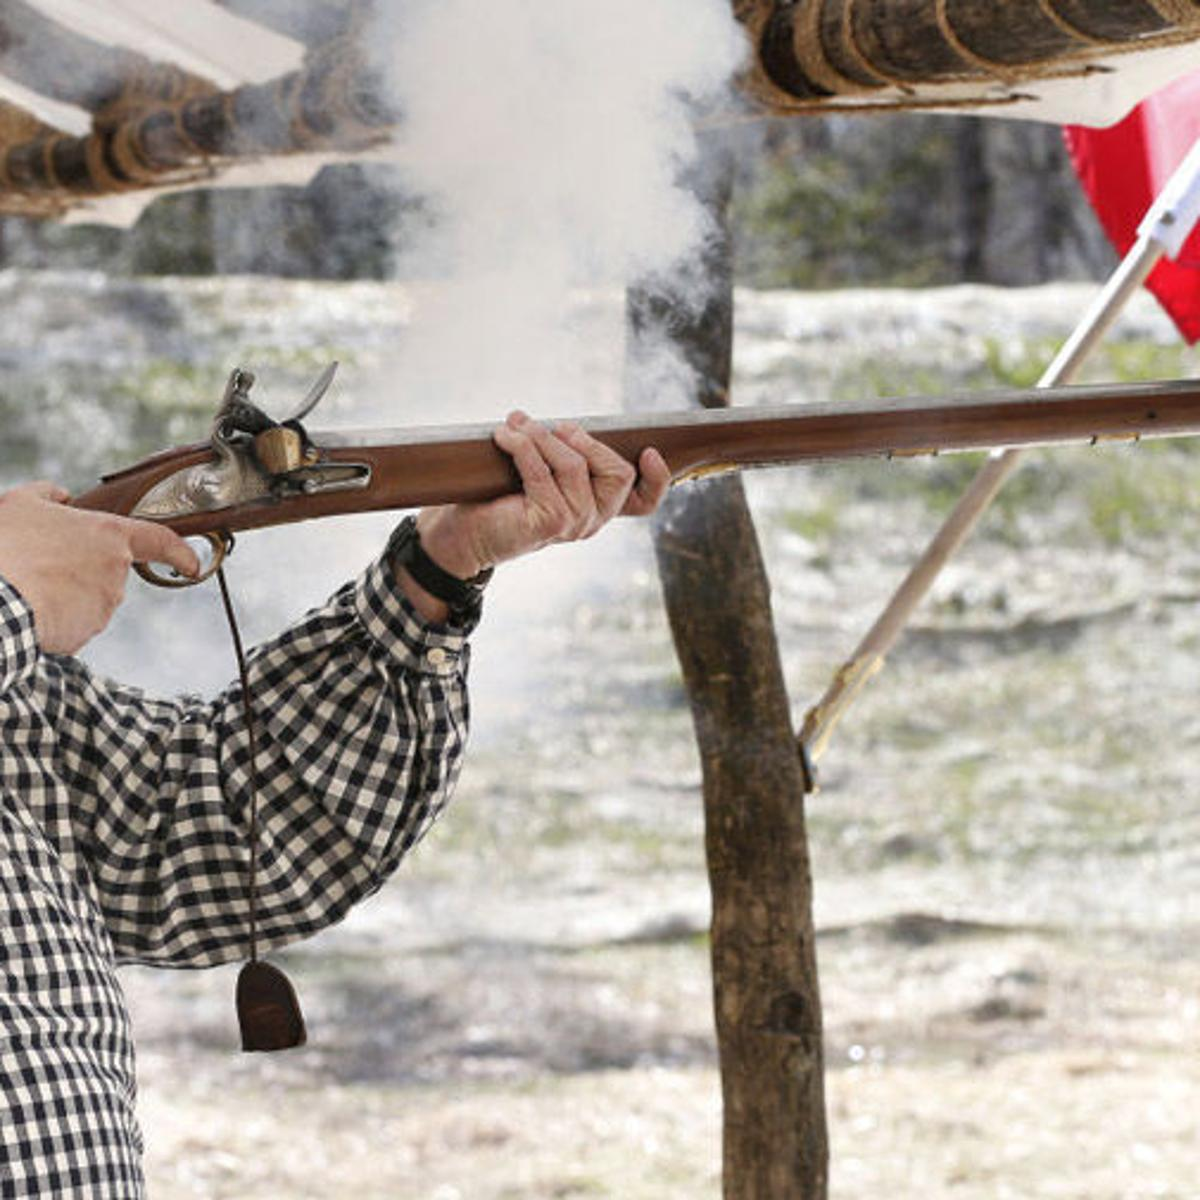 Visitors can shoot replicas of 18th-century muskets at